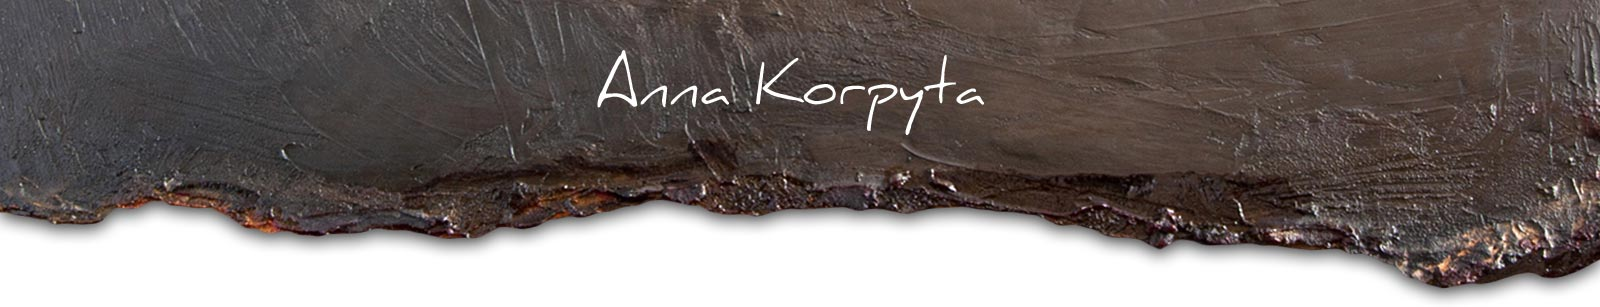 Anna Korpyta paintings